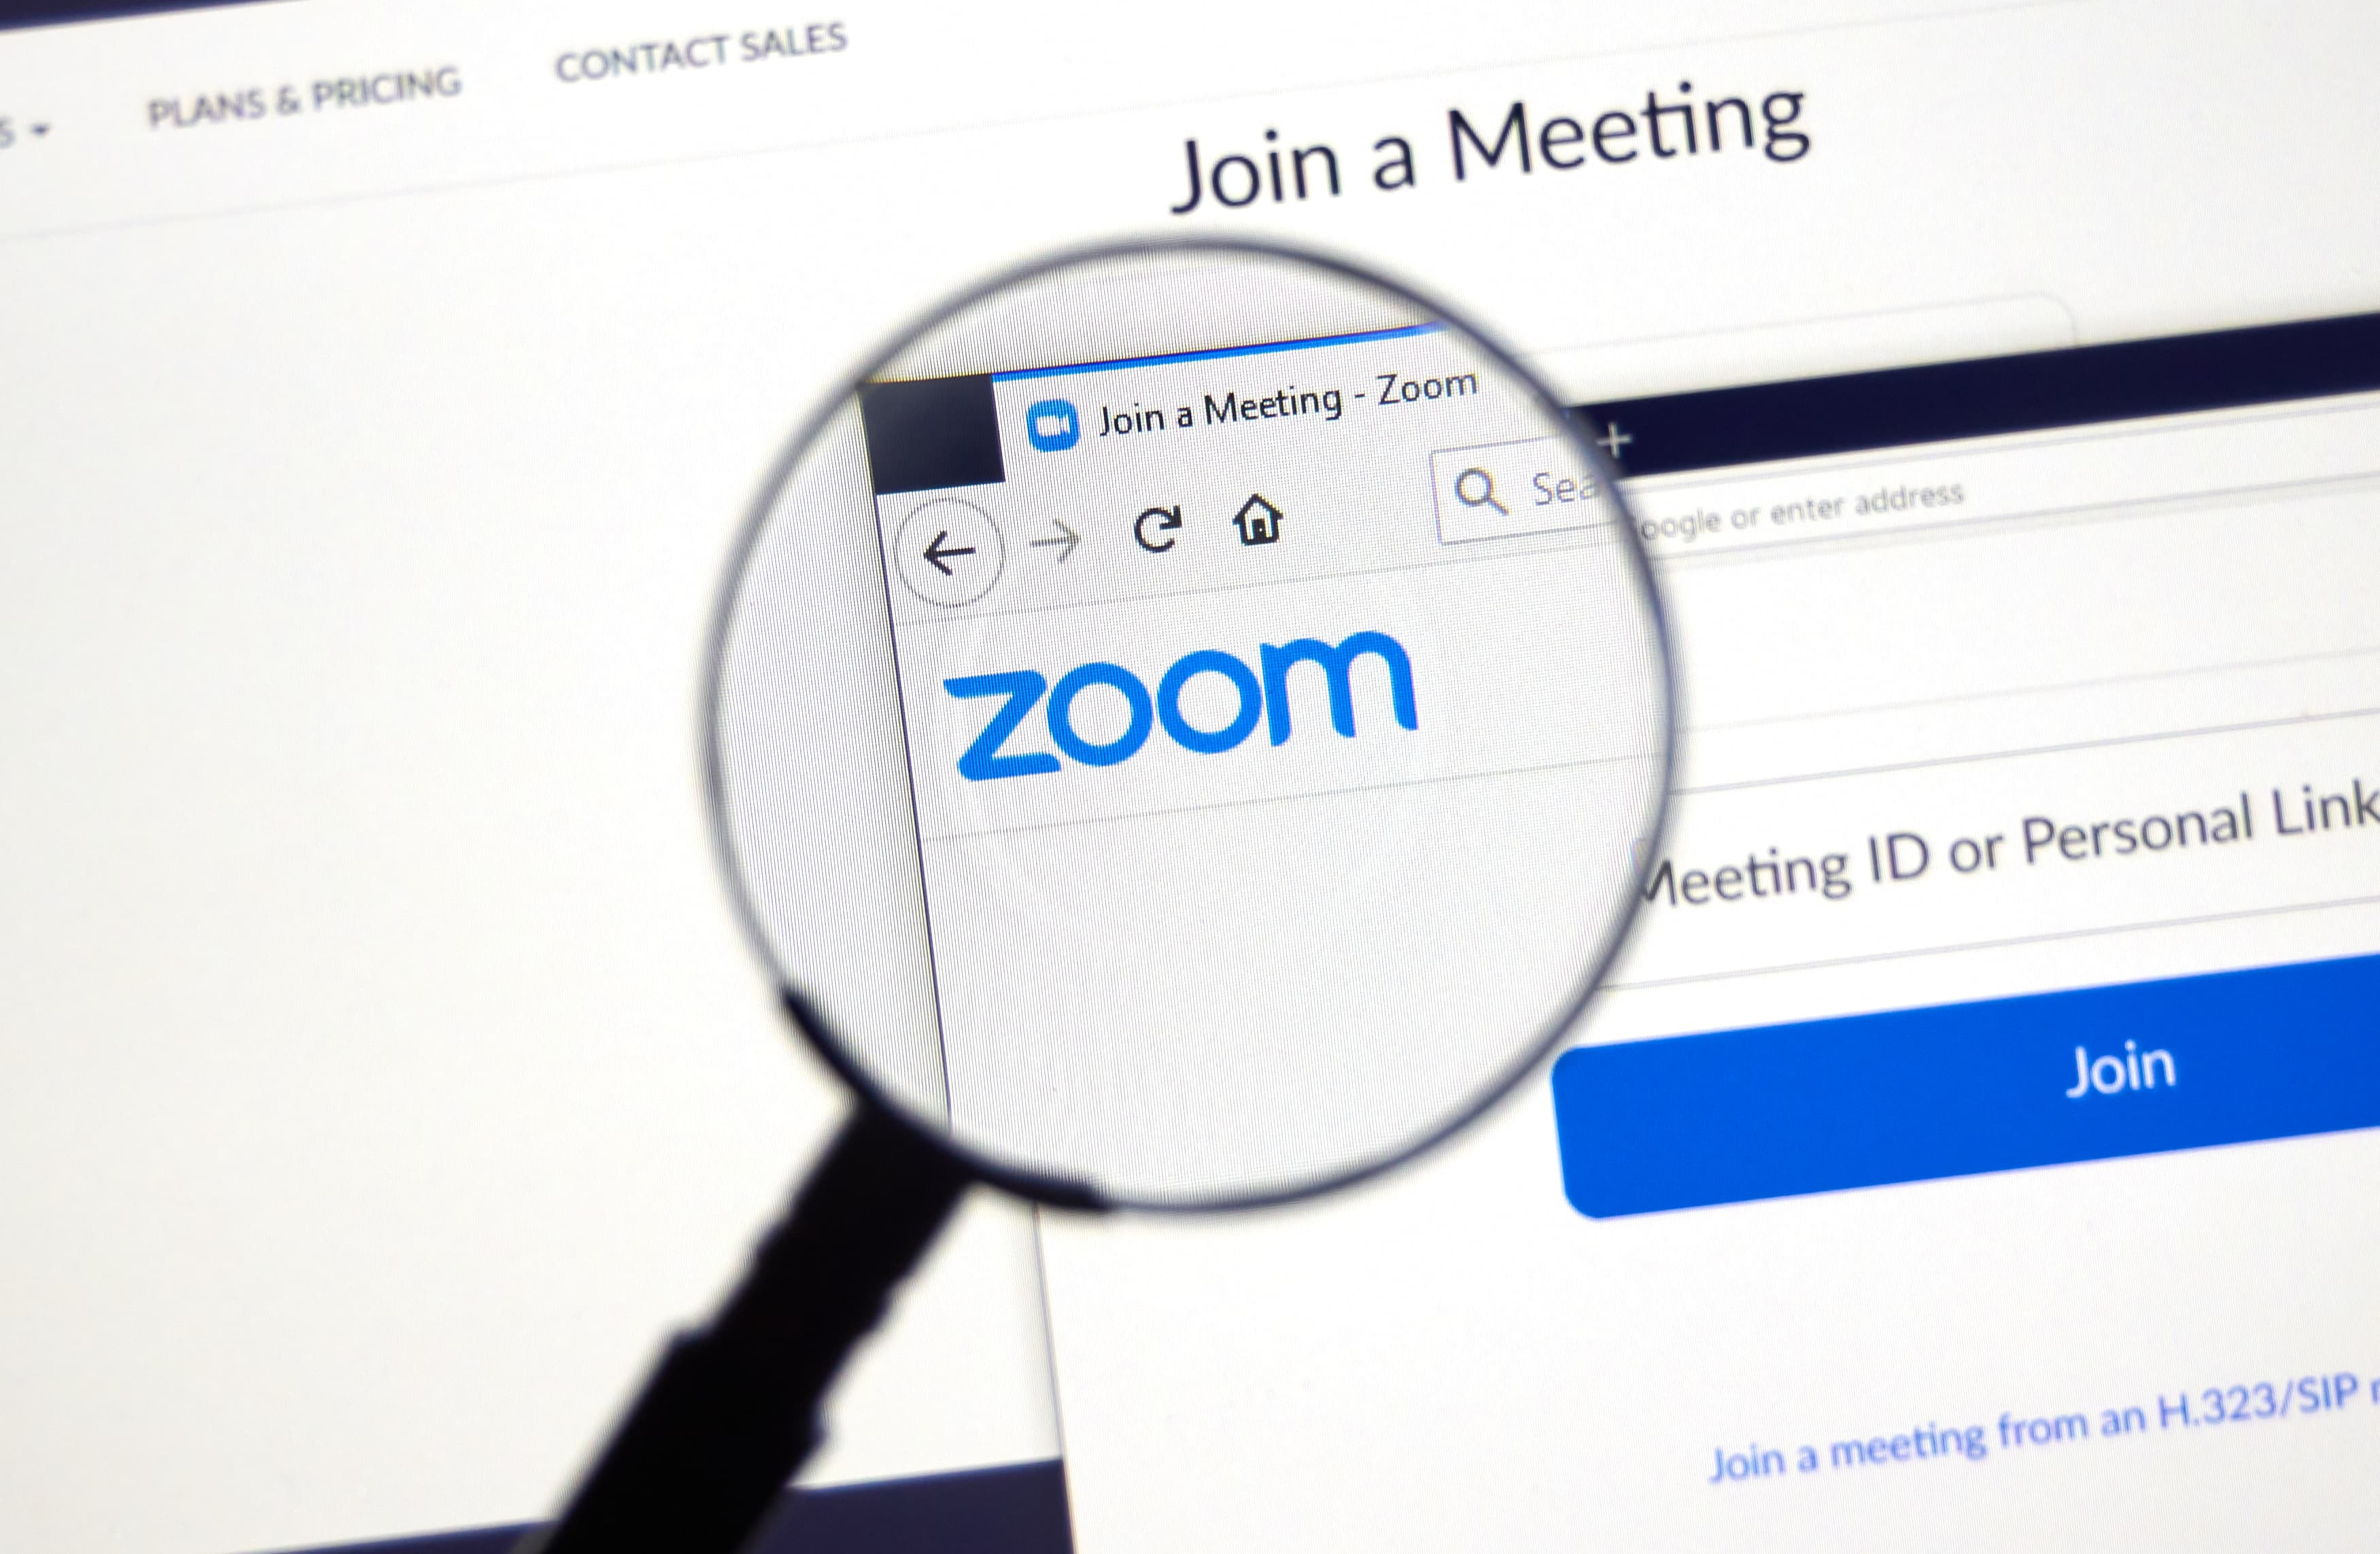 How To Conduct eDiscovery on Zoom Data: Best Practices and Main Challenges